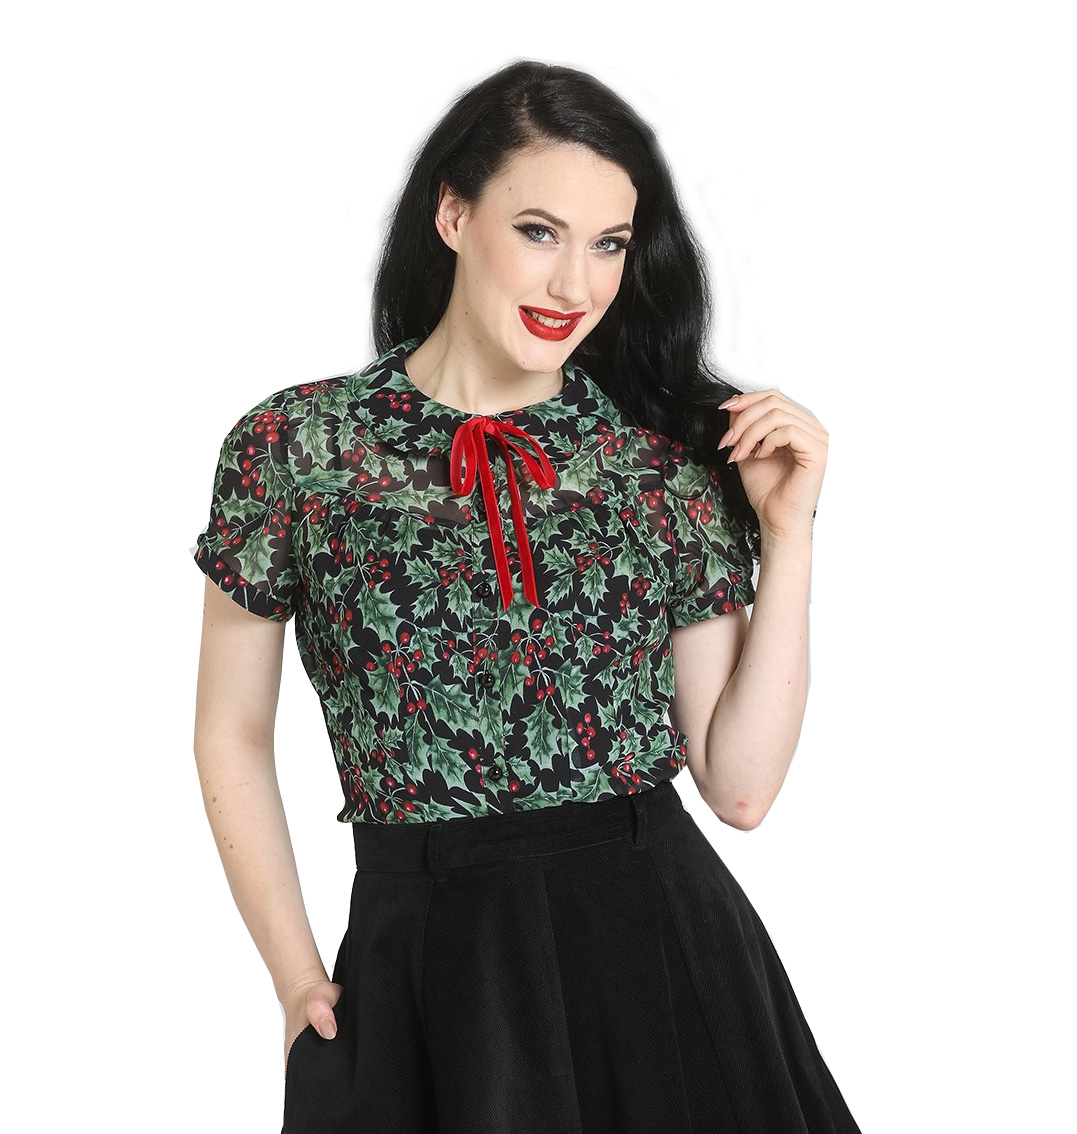 Hell-Bunny-50s-Shirt-Top-Christmas-Festive-HOLLY-Berry-Blouse-Black-All-Sizes thumbnail 15